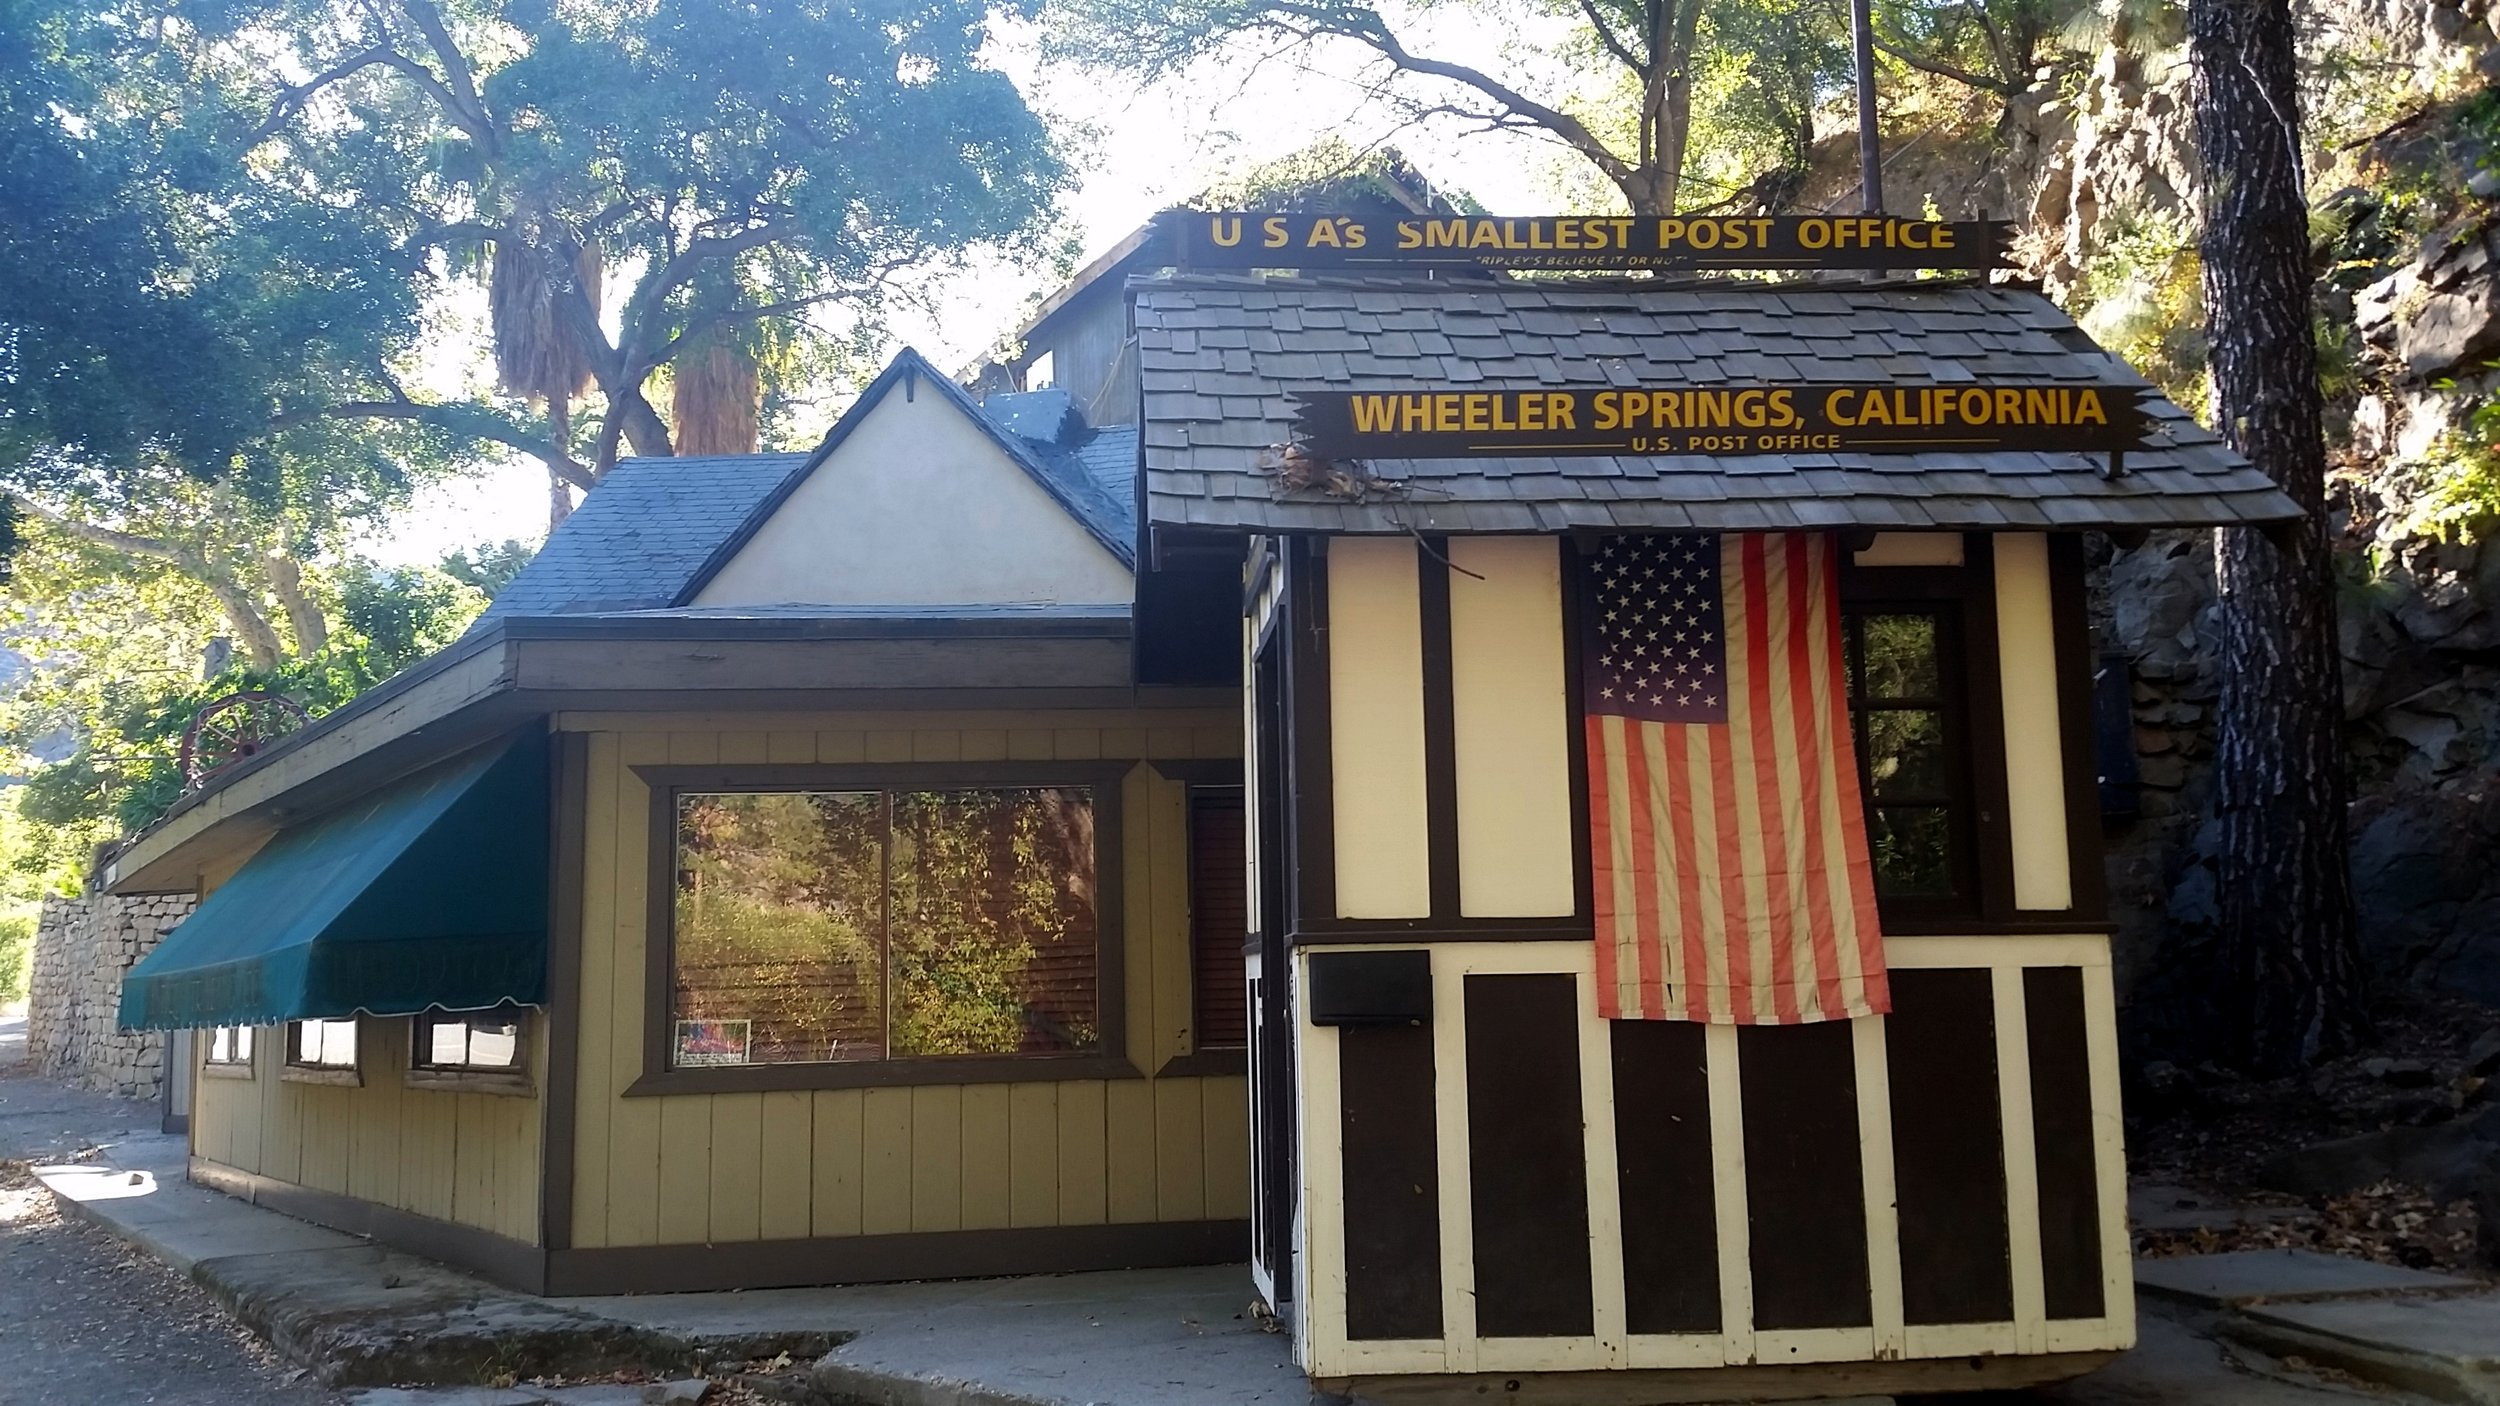 The smallest post office in the country? I guess so.